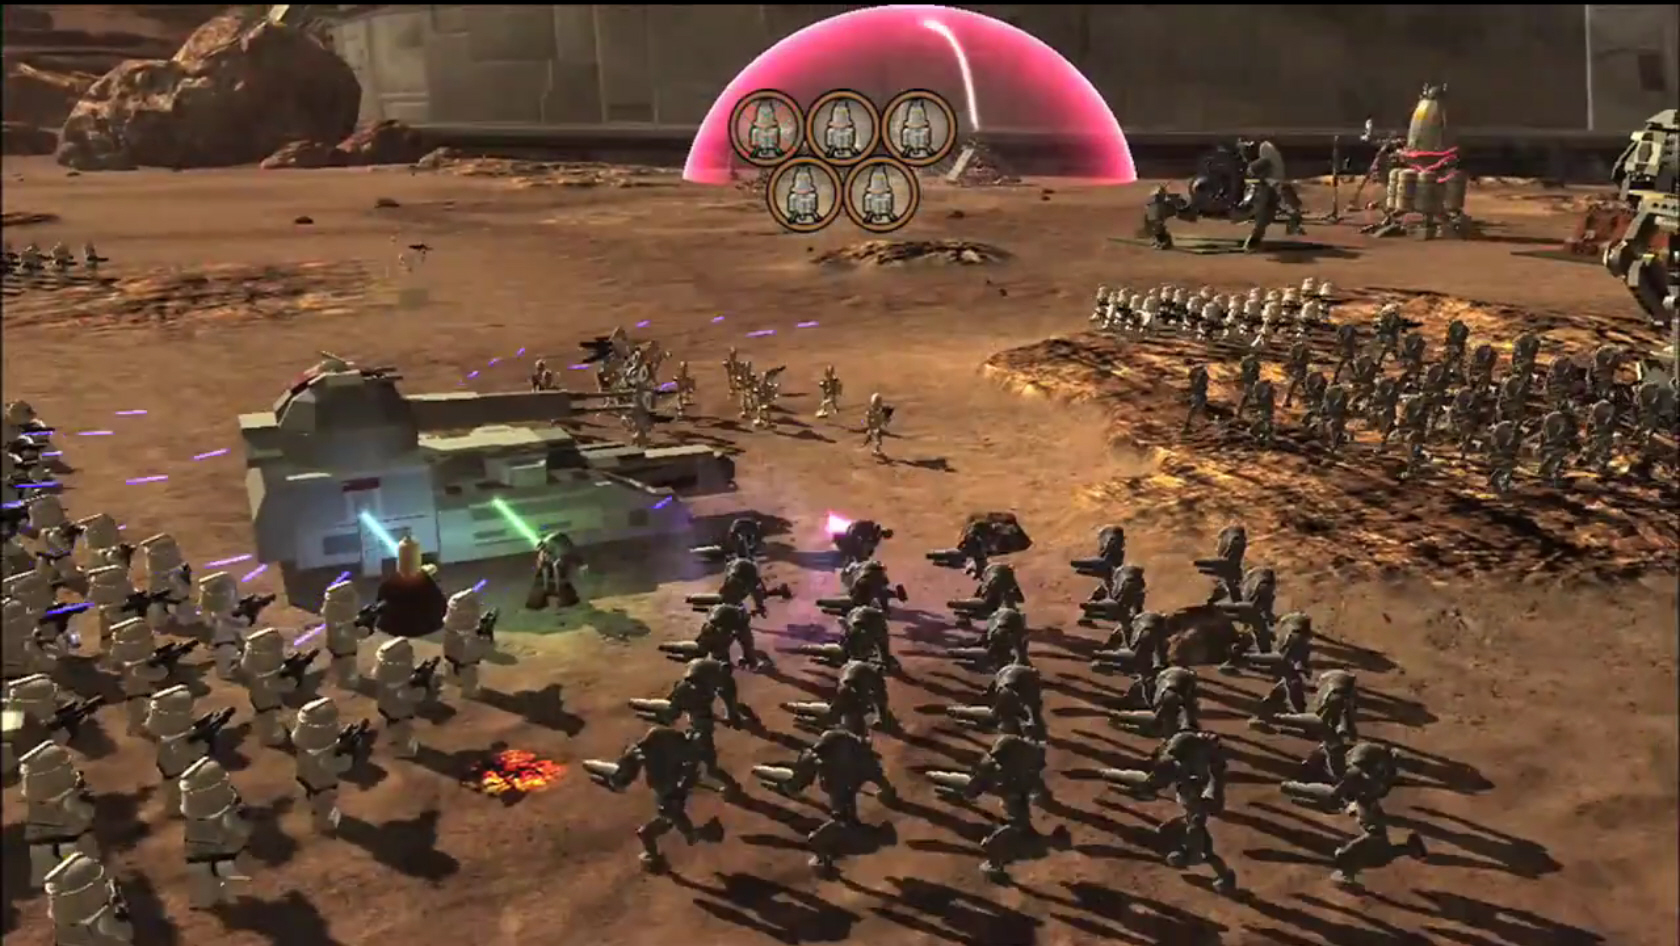 Download Game Lego Star Wars Iii